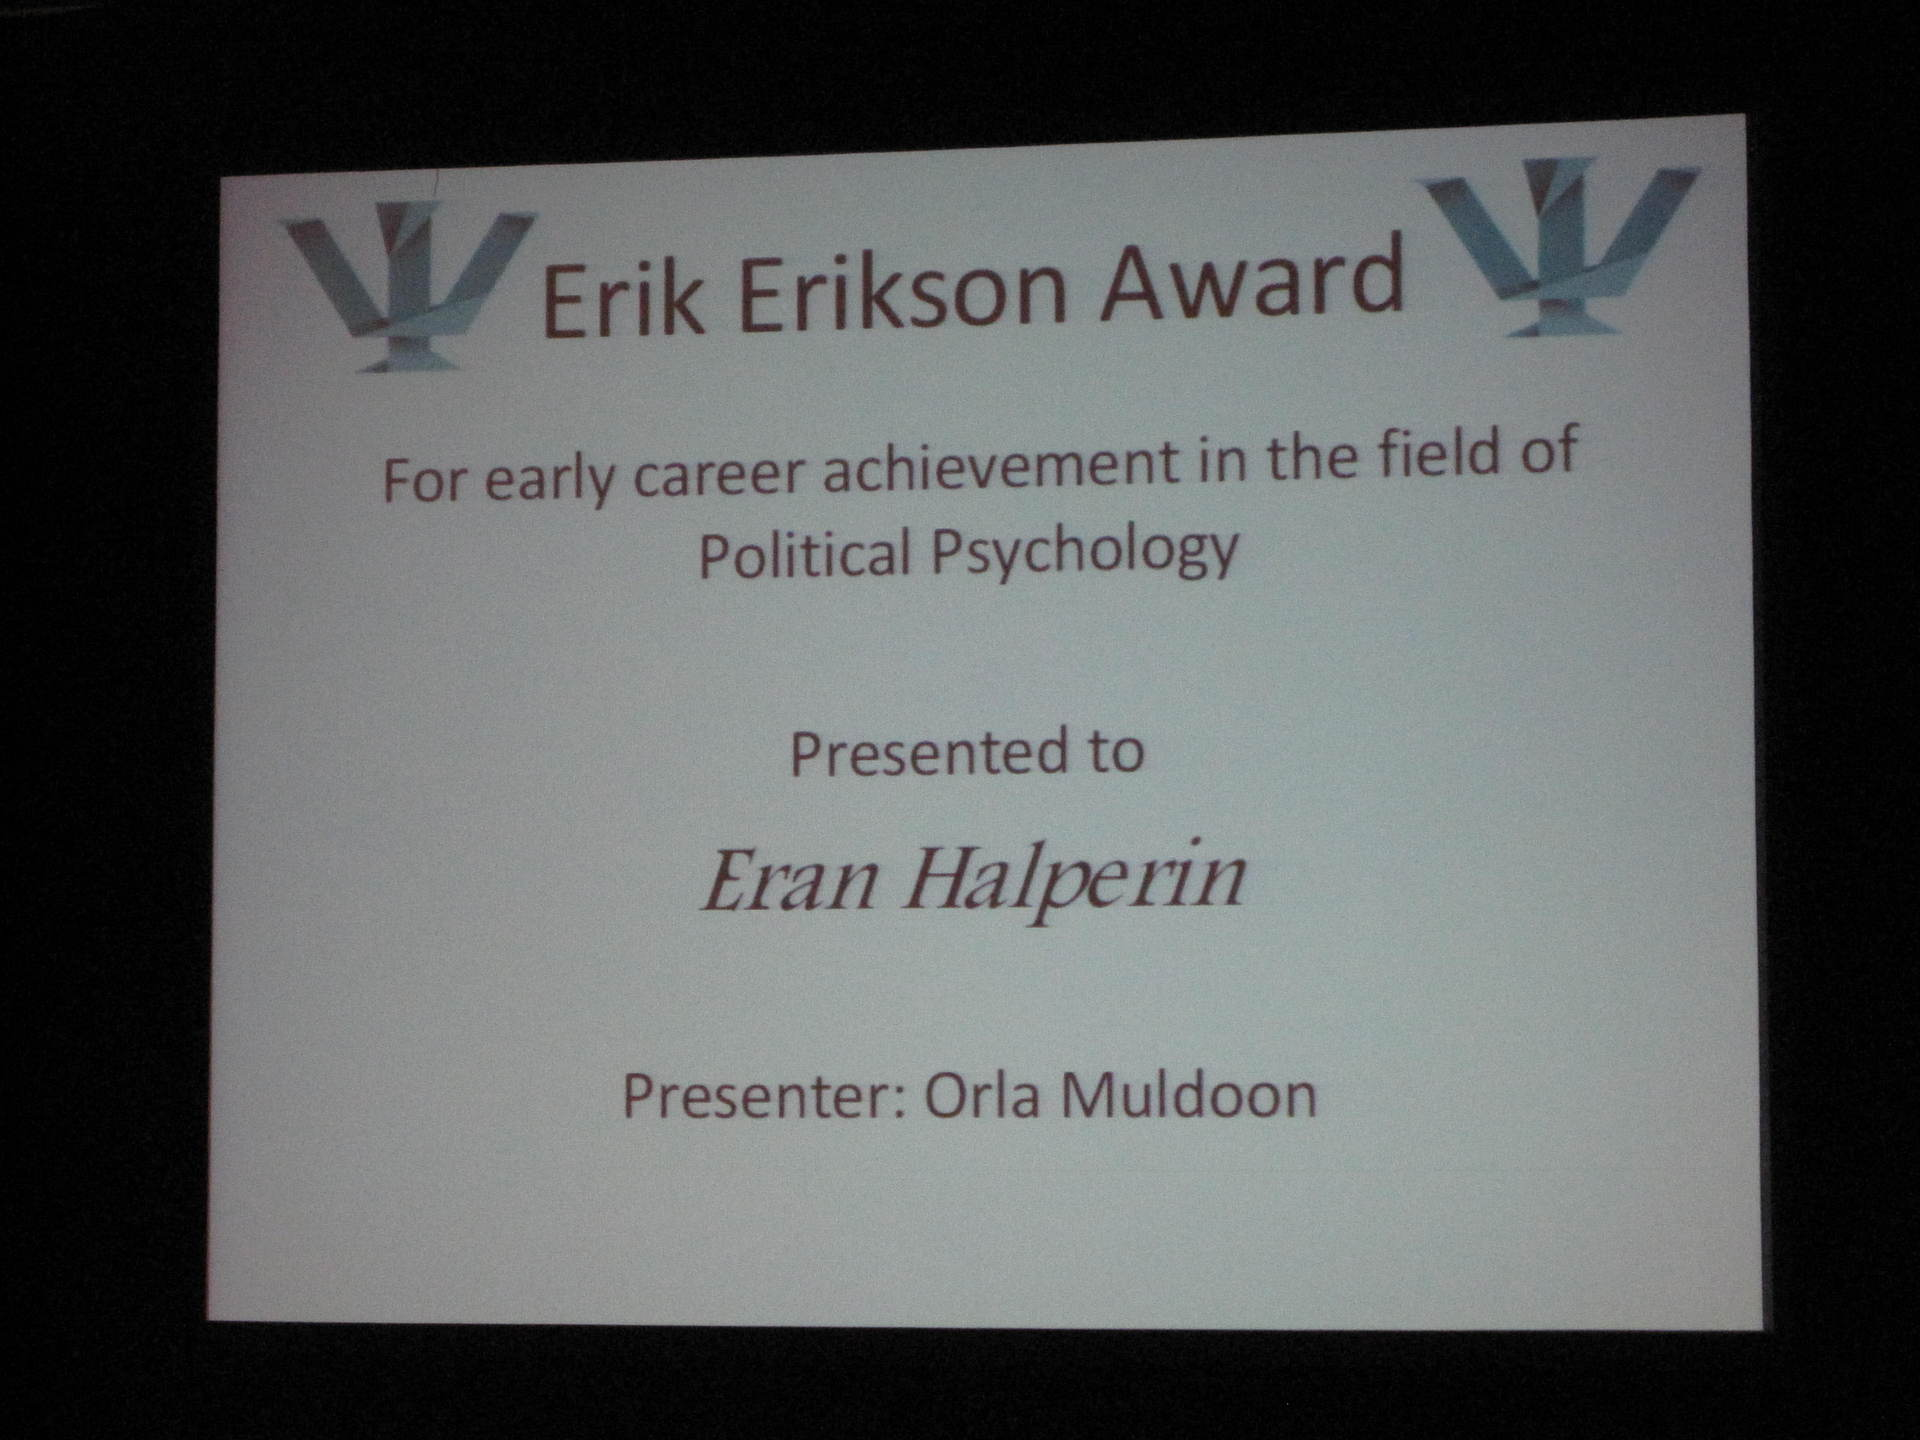 The Erikson Award Ceremony